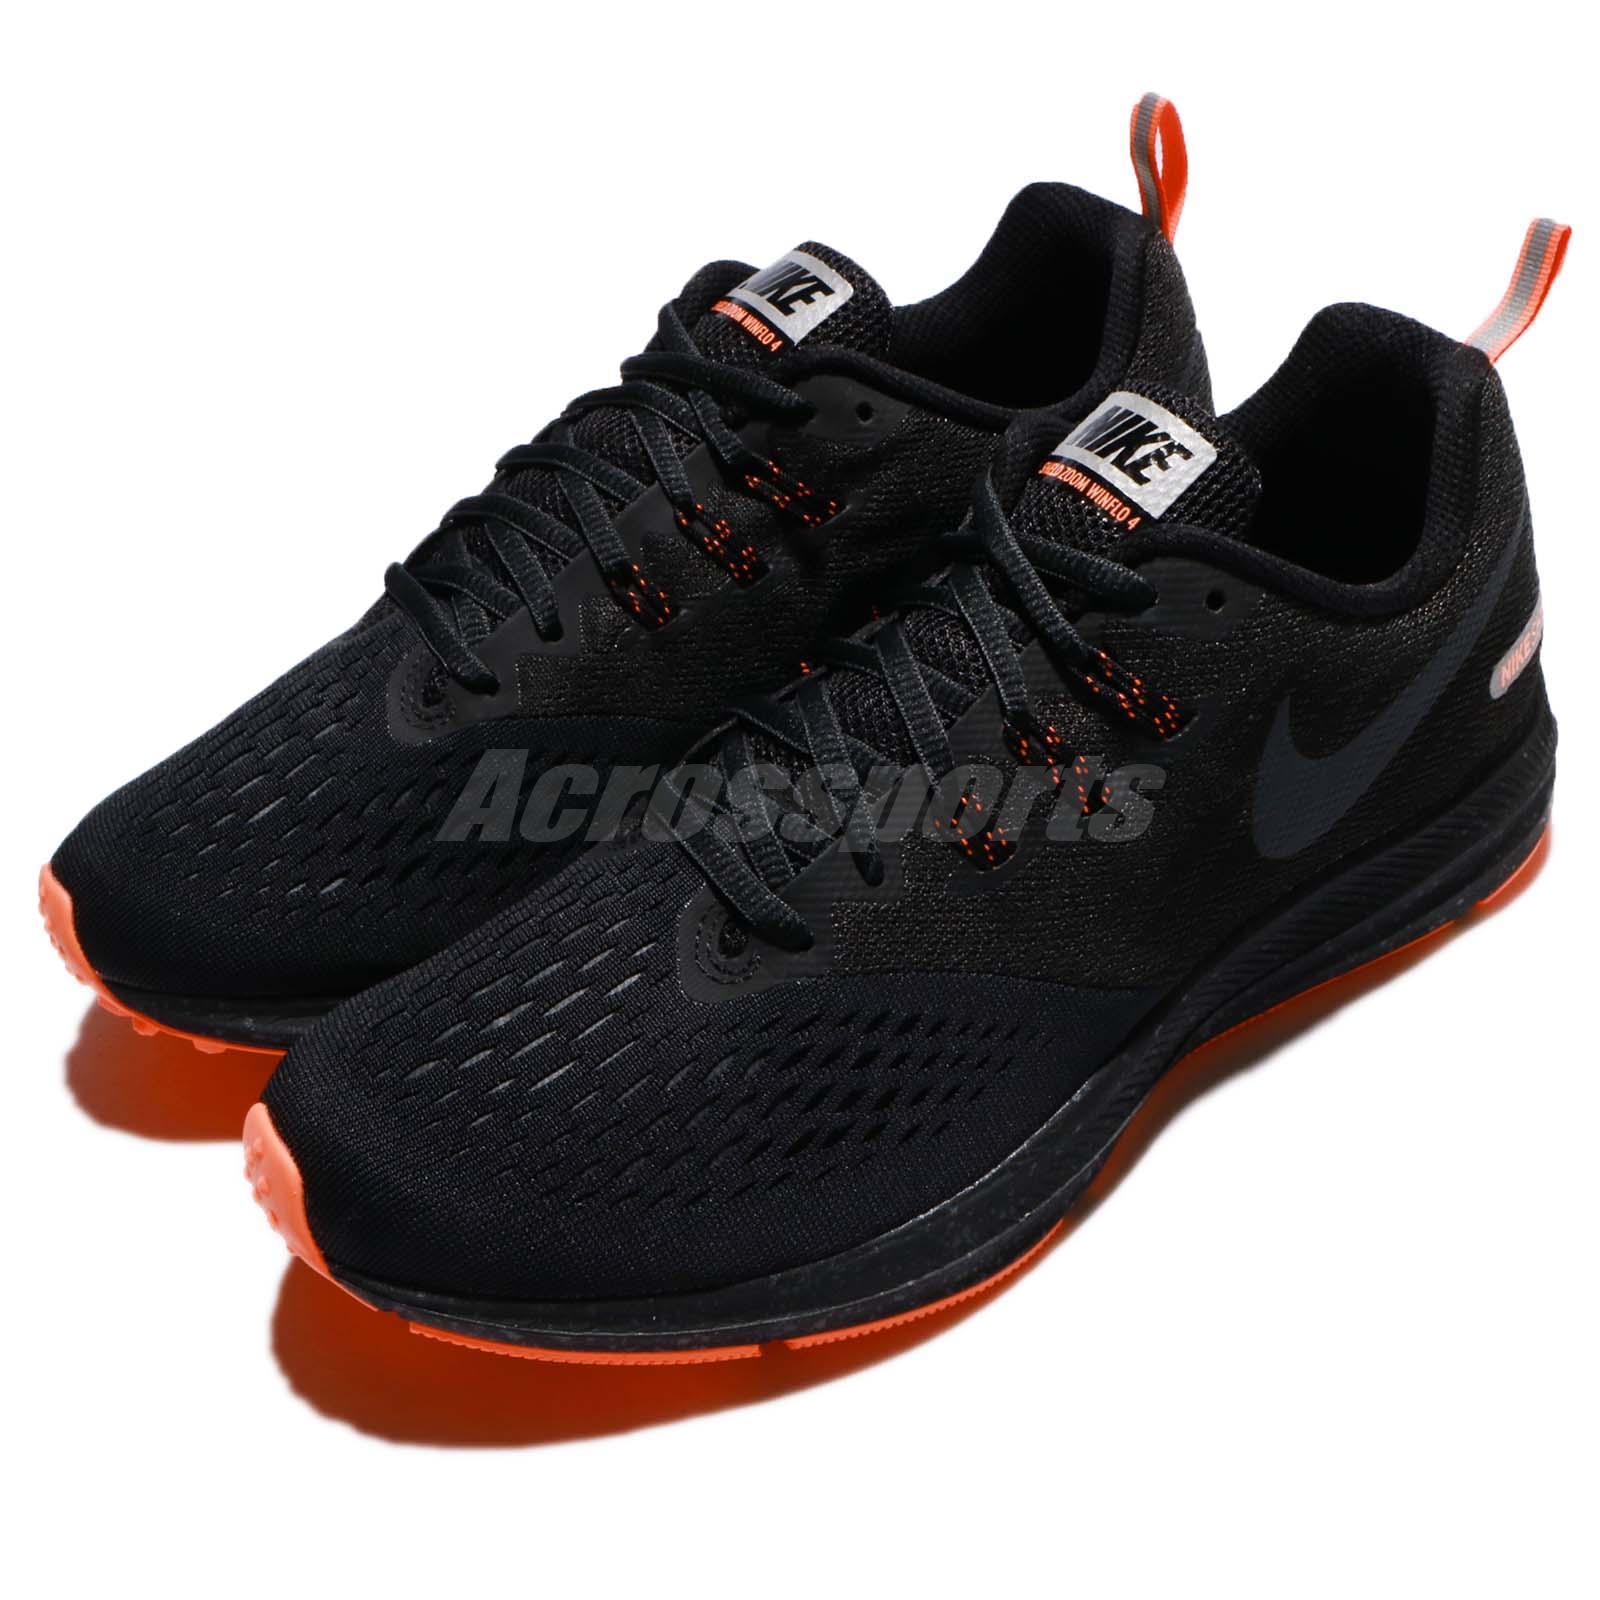 Details about Nike Zoom Winflo 4 IV Shield Black Anthracite Red Men Running  Shoes 921704-001 158c681175154